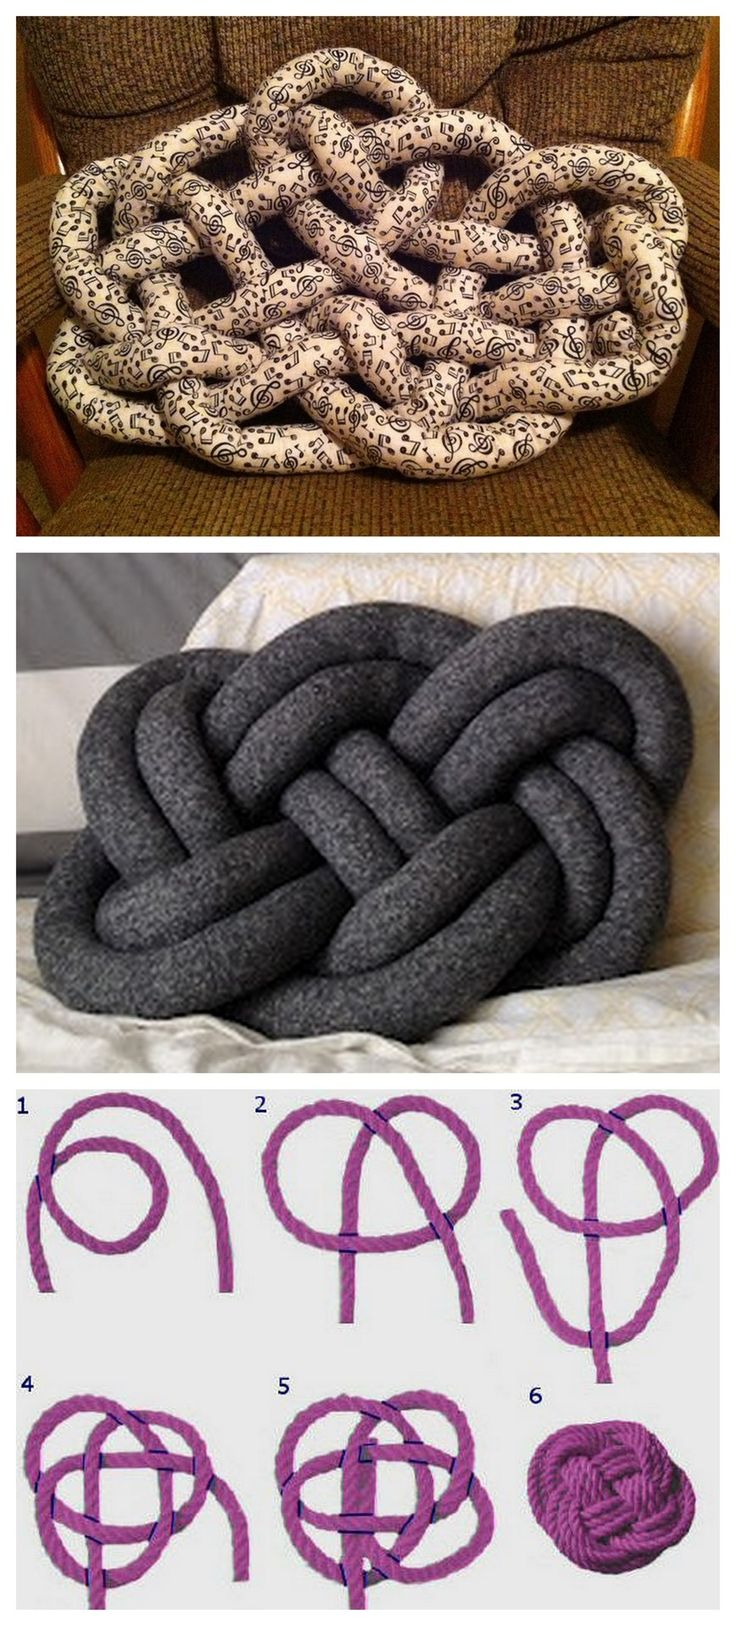 DIY Celtic Knot Pillow Tutorial from Cut Out + Keep here